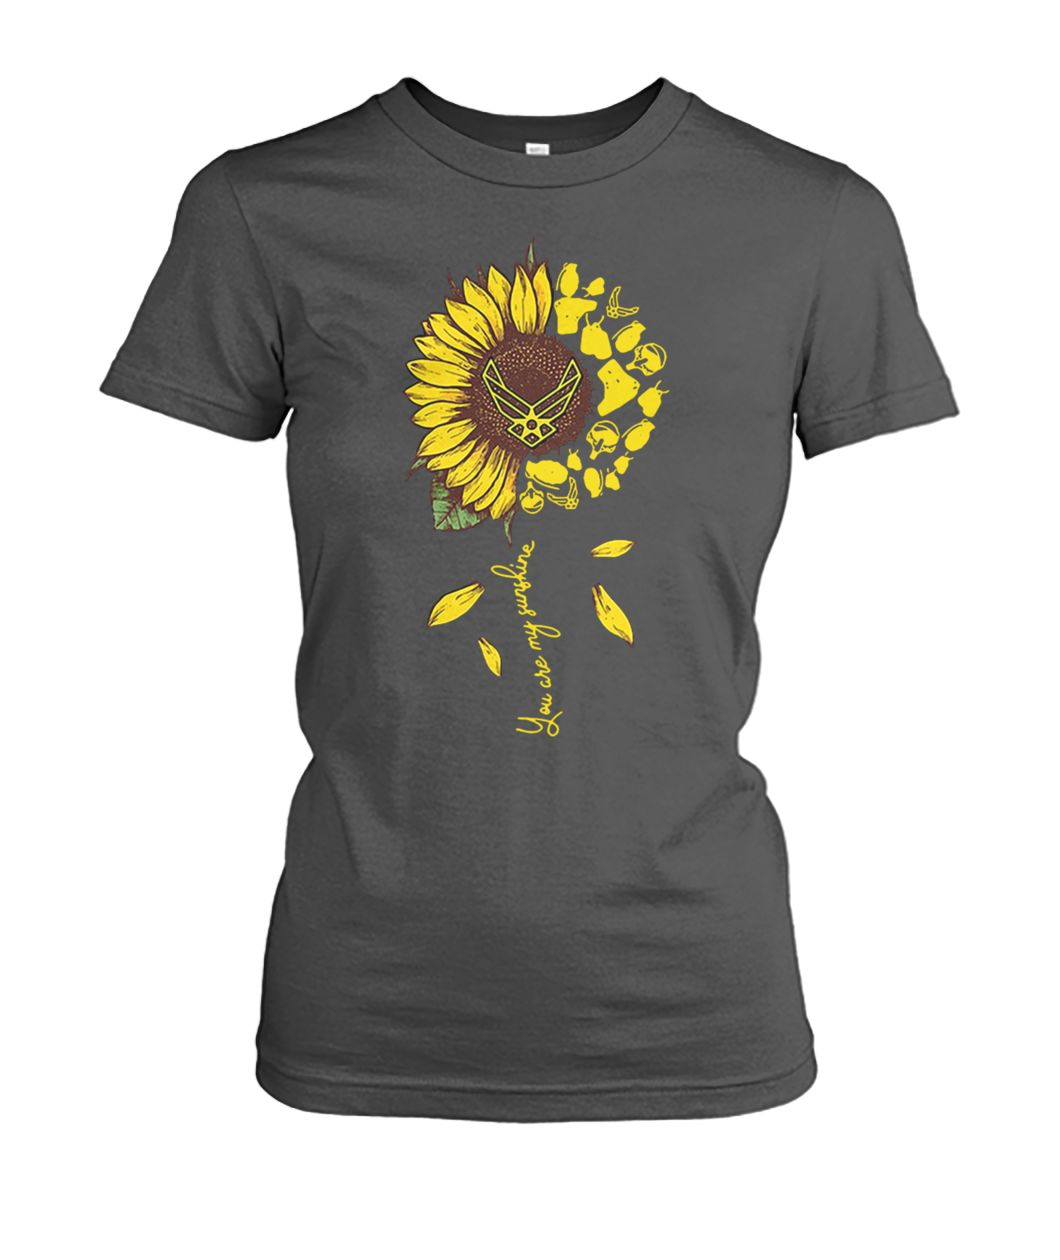 Sunflower you are my sunshine US air force women's crew tee